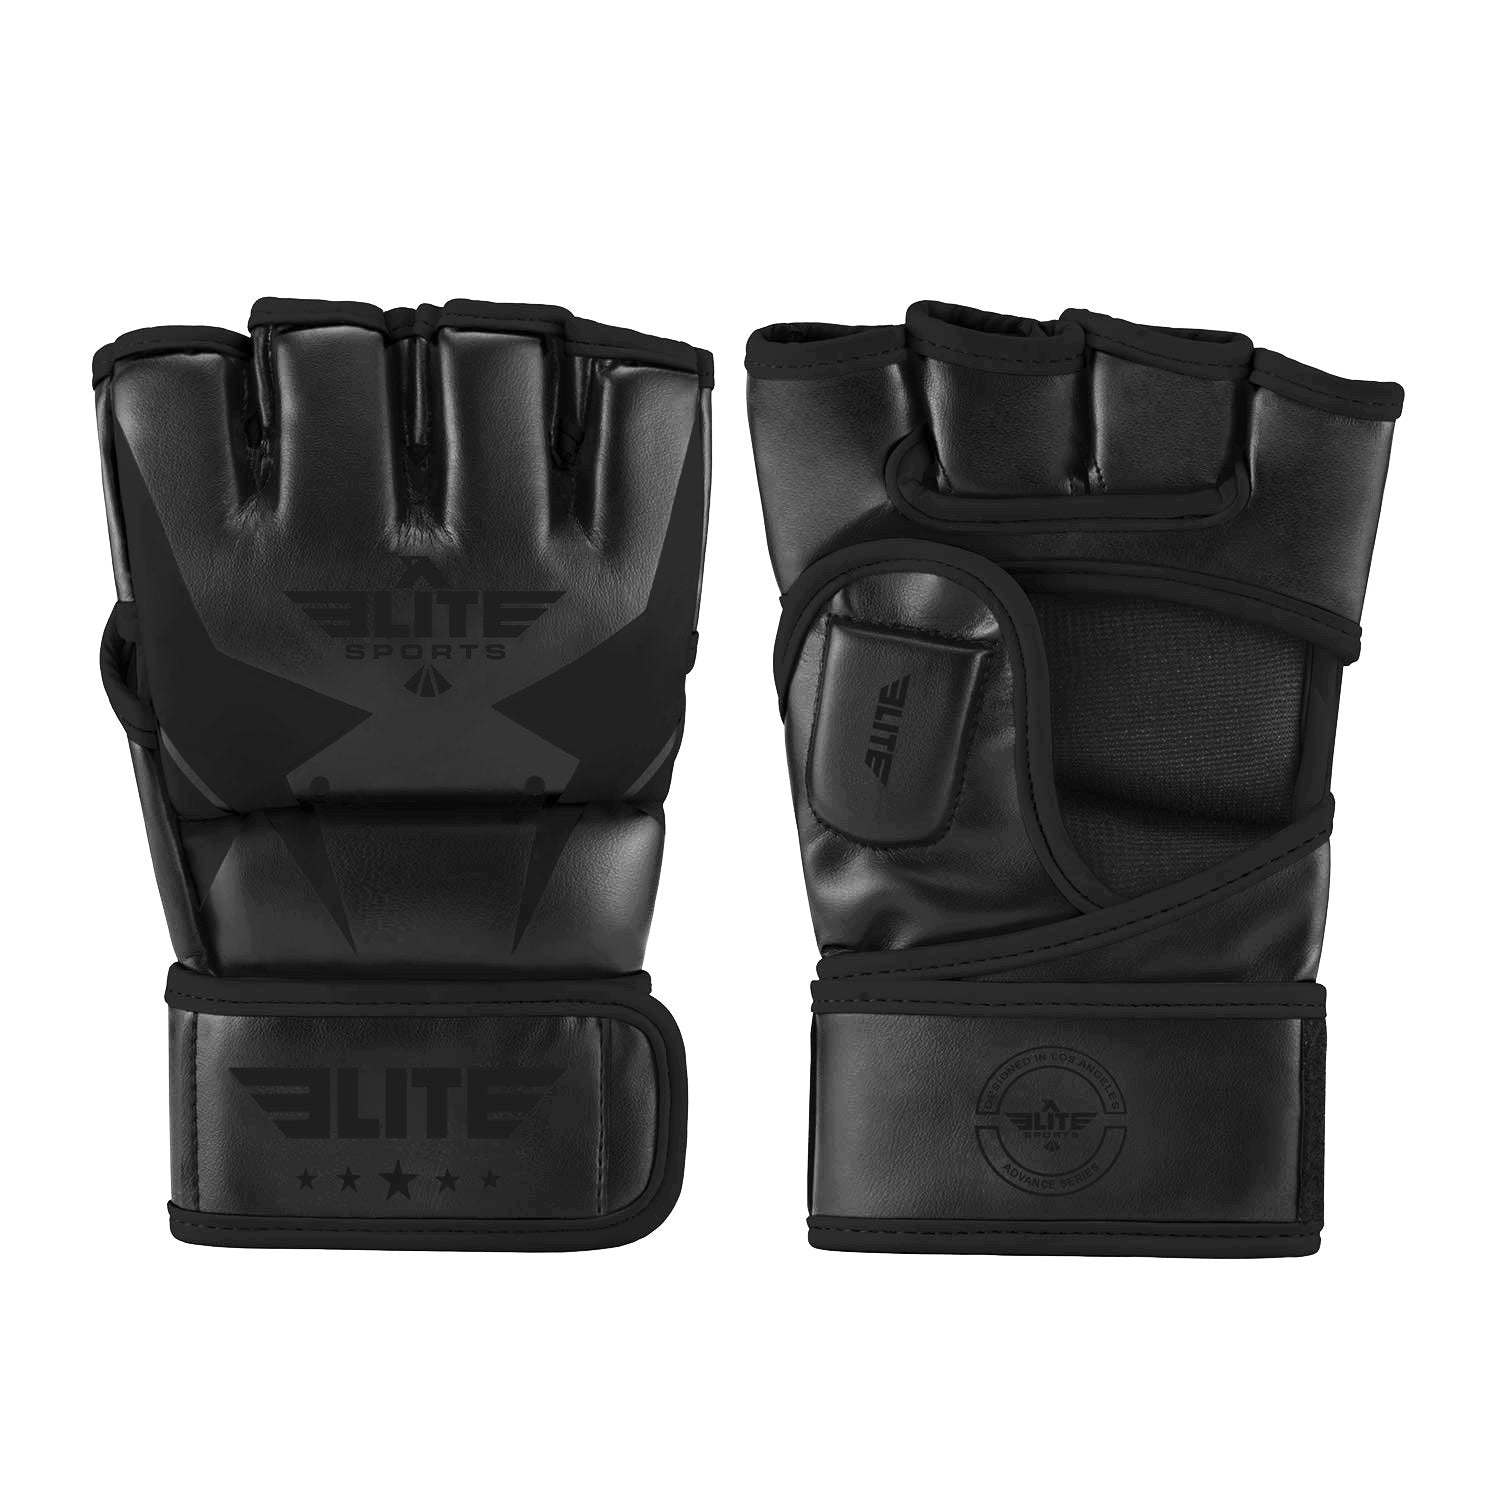 Elite Sports Pro Style Black MMA Half Mitts Grappling Gloves